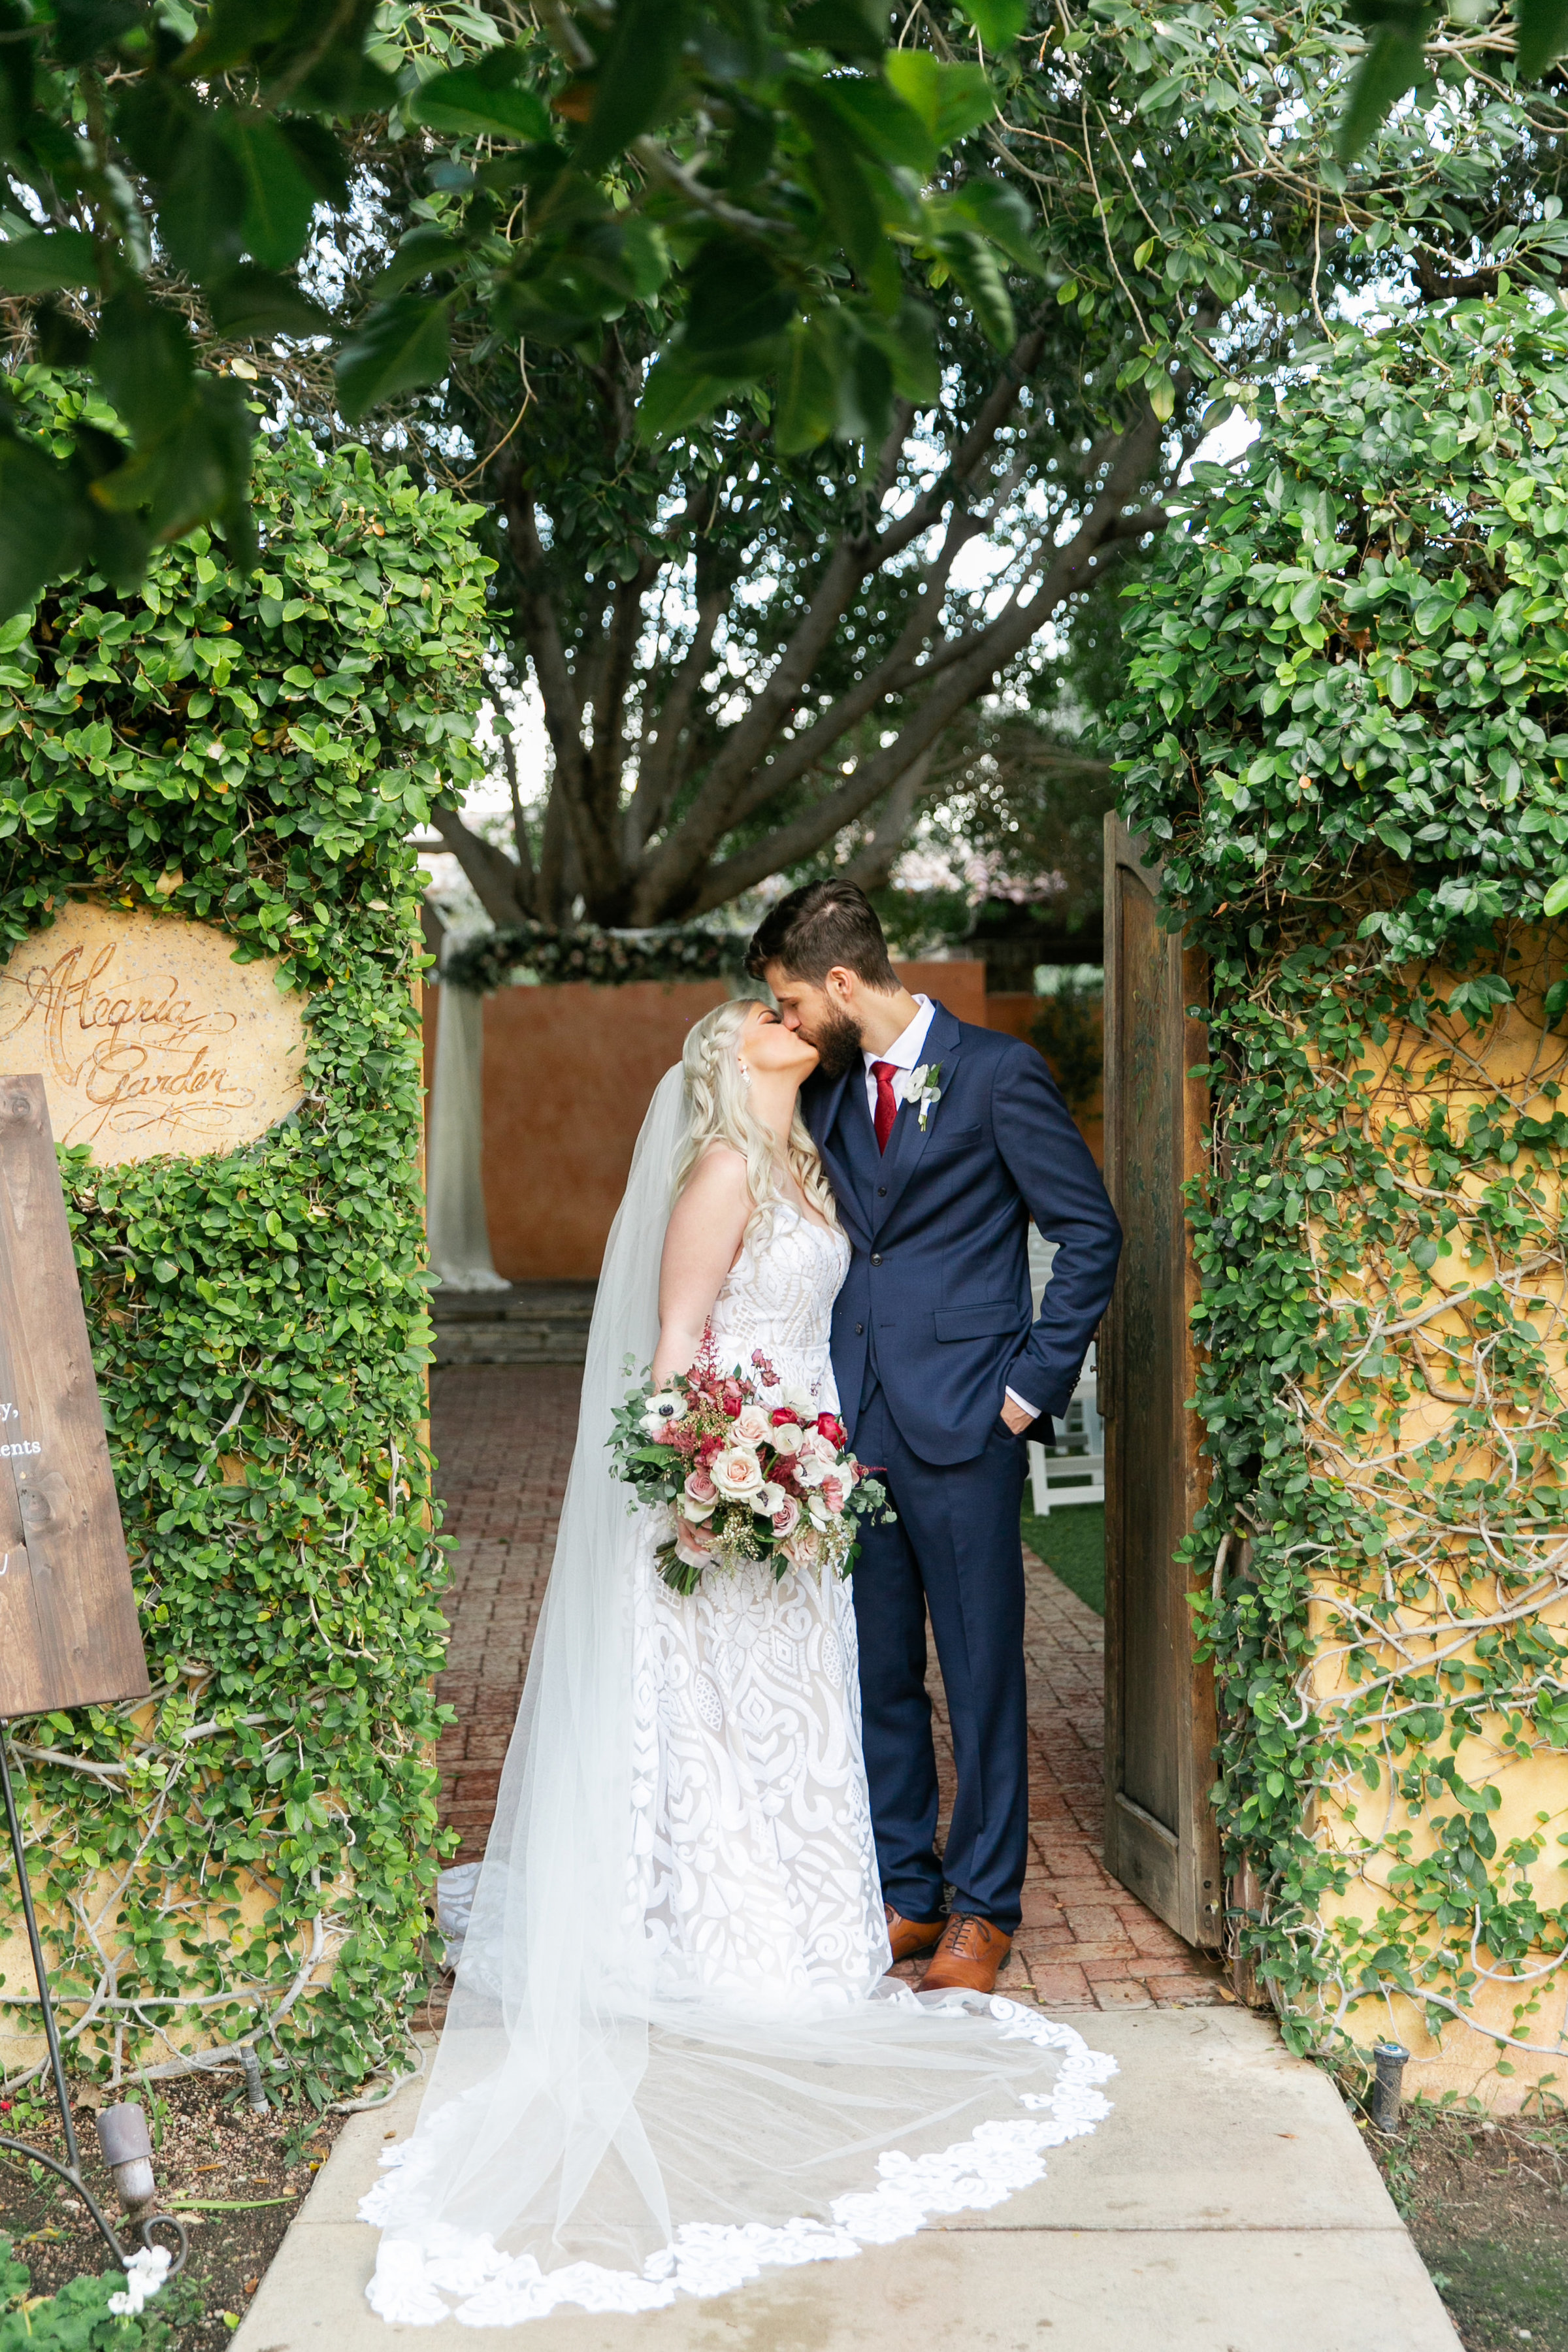 Karlie Colleen Photography - The Royal Palms Wedding - Some Like It Classic - Alex & Sam-469